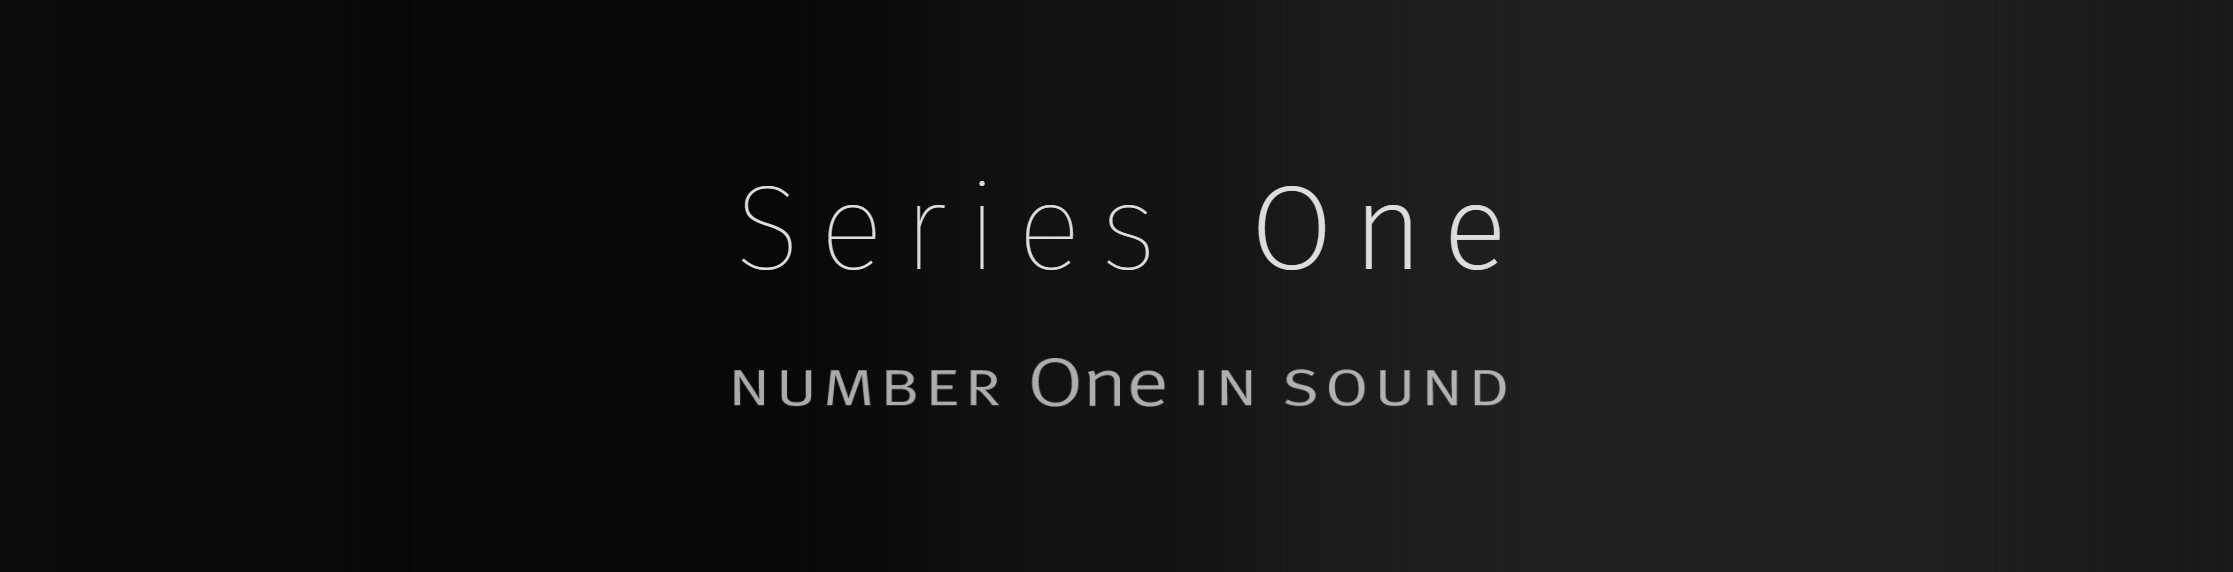 Series One